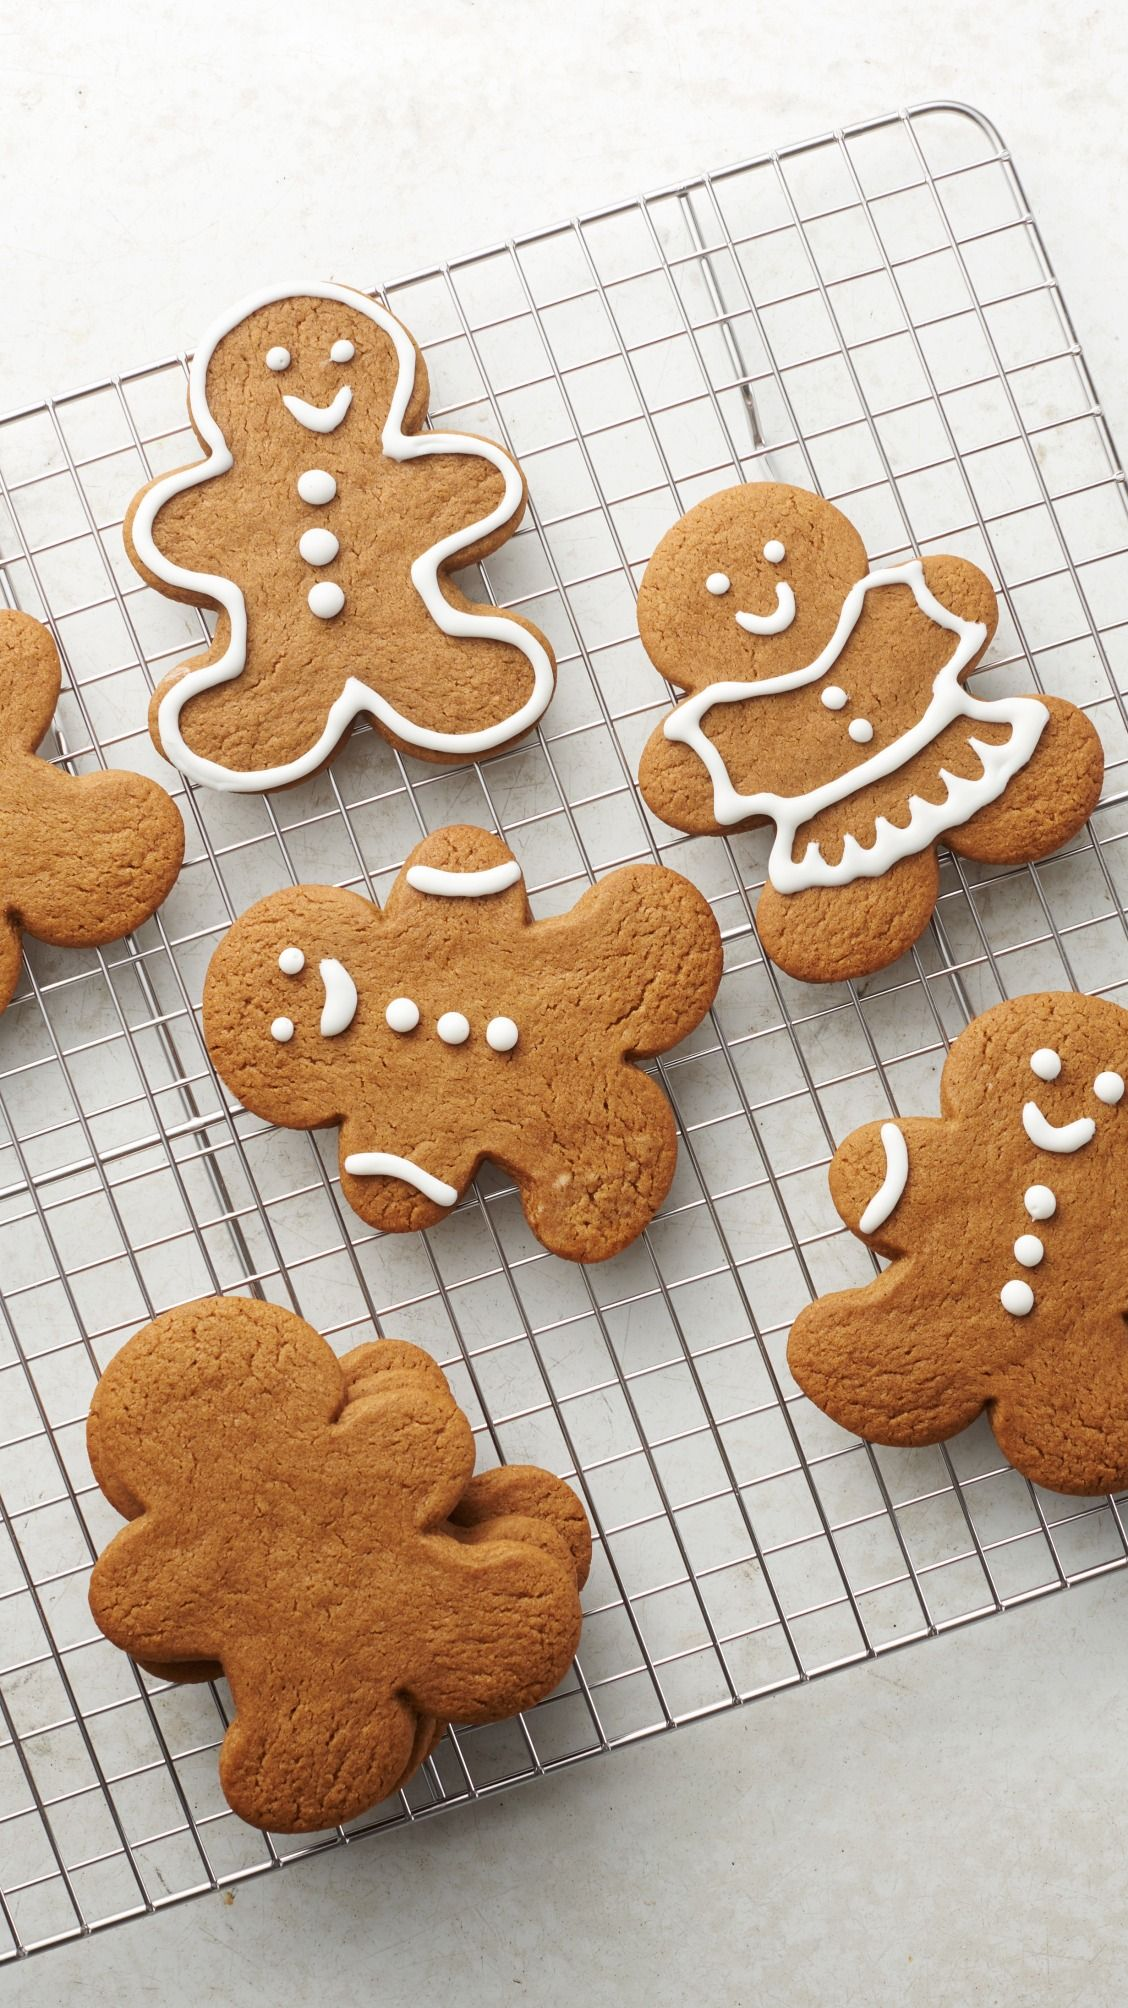 Healthy Gingerbread Cookies Recipe Soft Gingerbread Cookies Ginger Bread Cookies Recipe Healthy Gingerbread Cookies